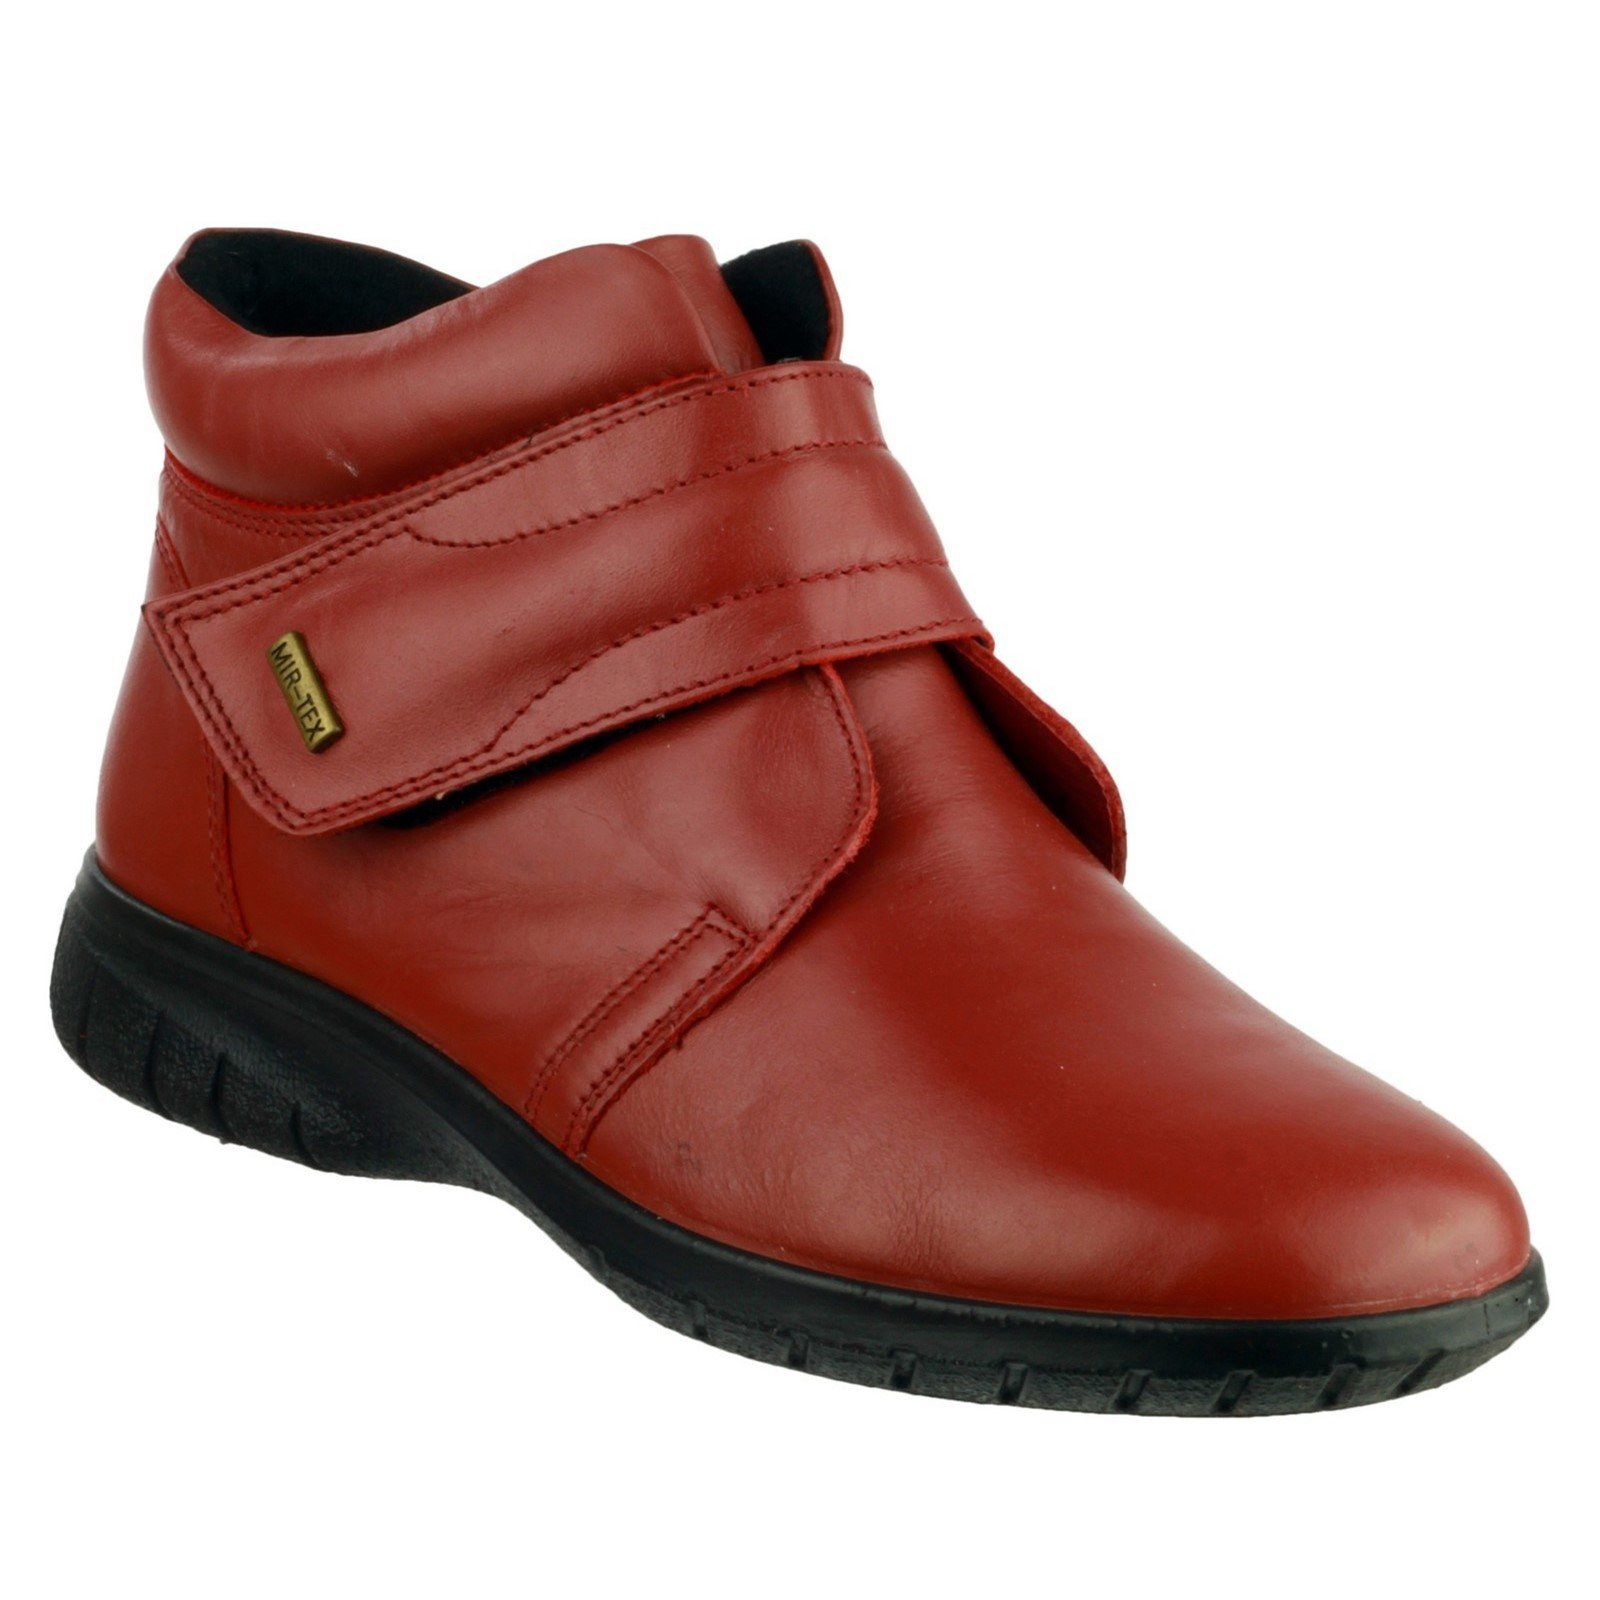 Cotswold Women's Chalford 2 Ankle Boot Various Colours 32977 - Red 3